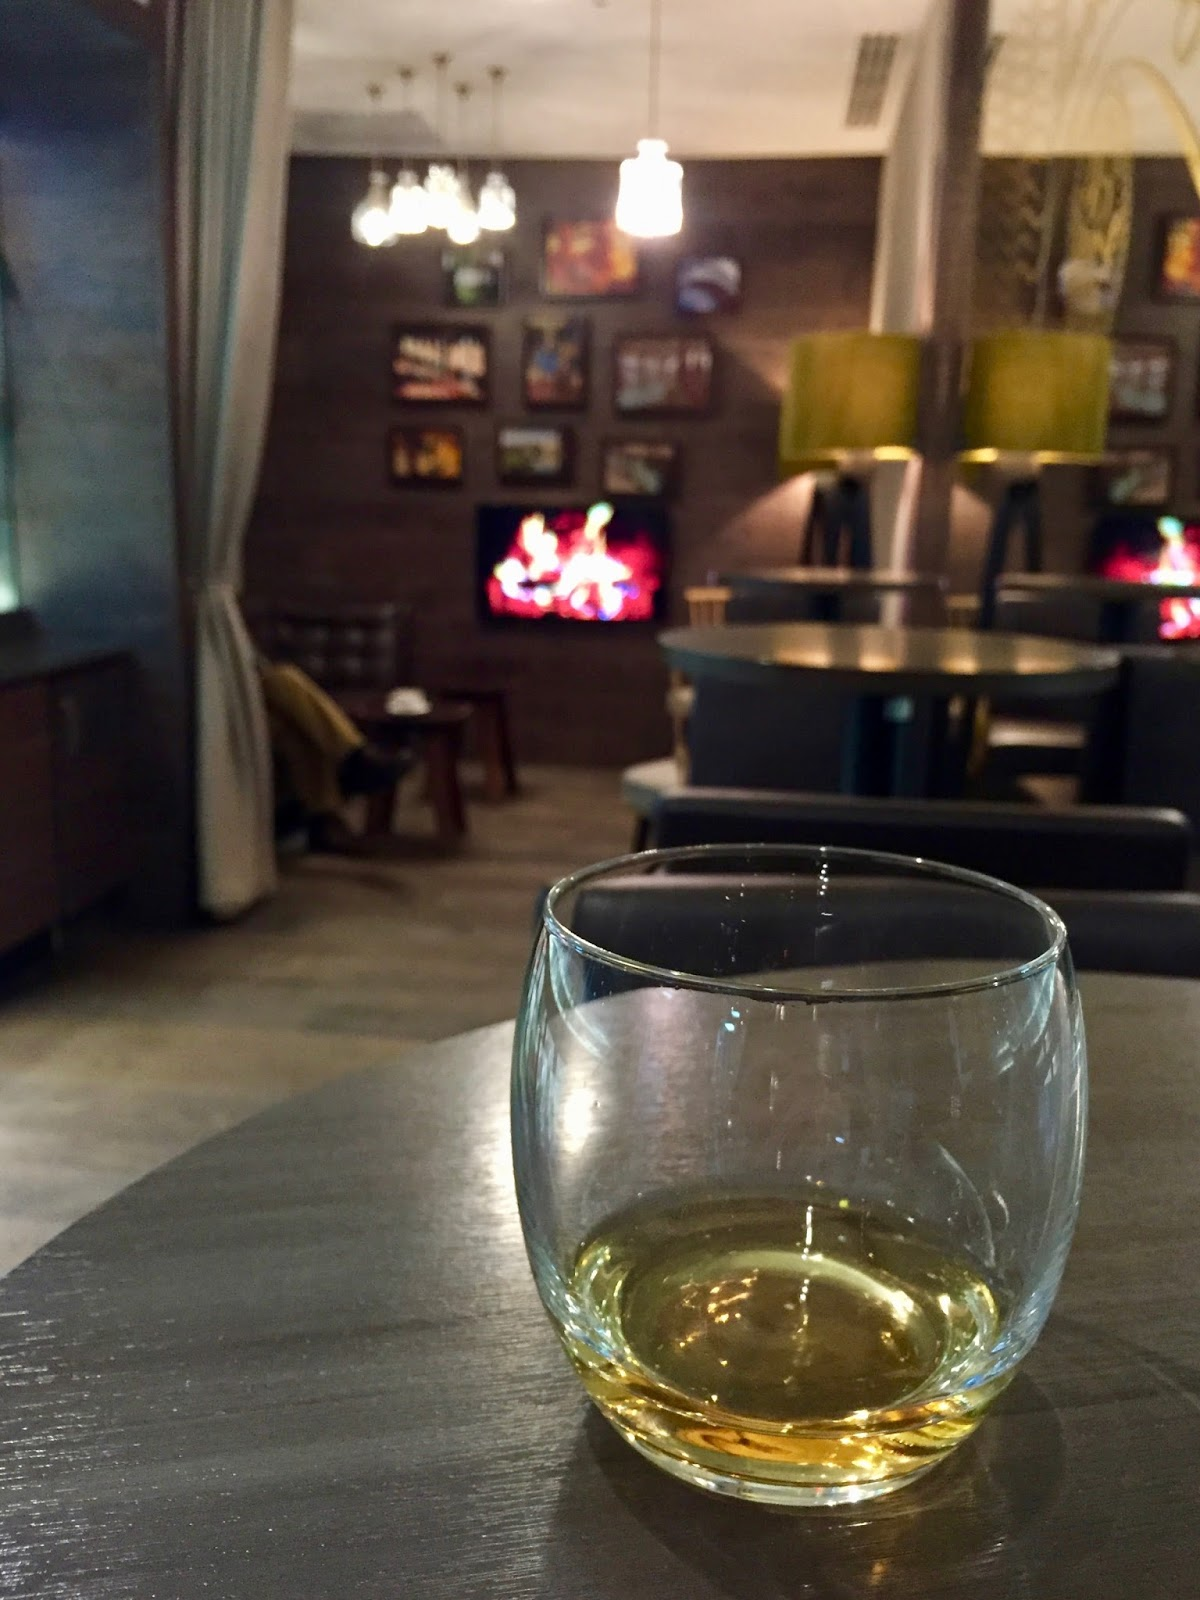 a whisky snug located in the British airways club lounge at Glasgow airport in Scotland, photo and blog post by Cal Mc from www.CalMcTravels.com